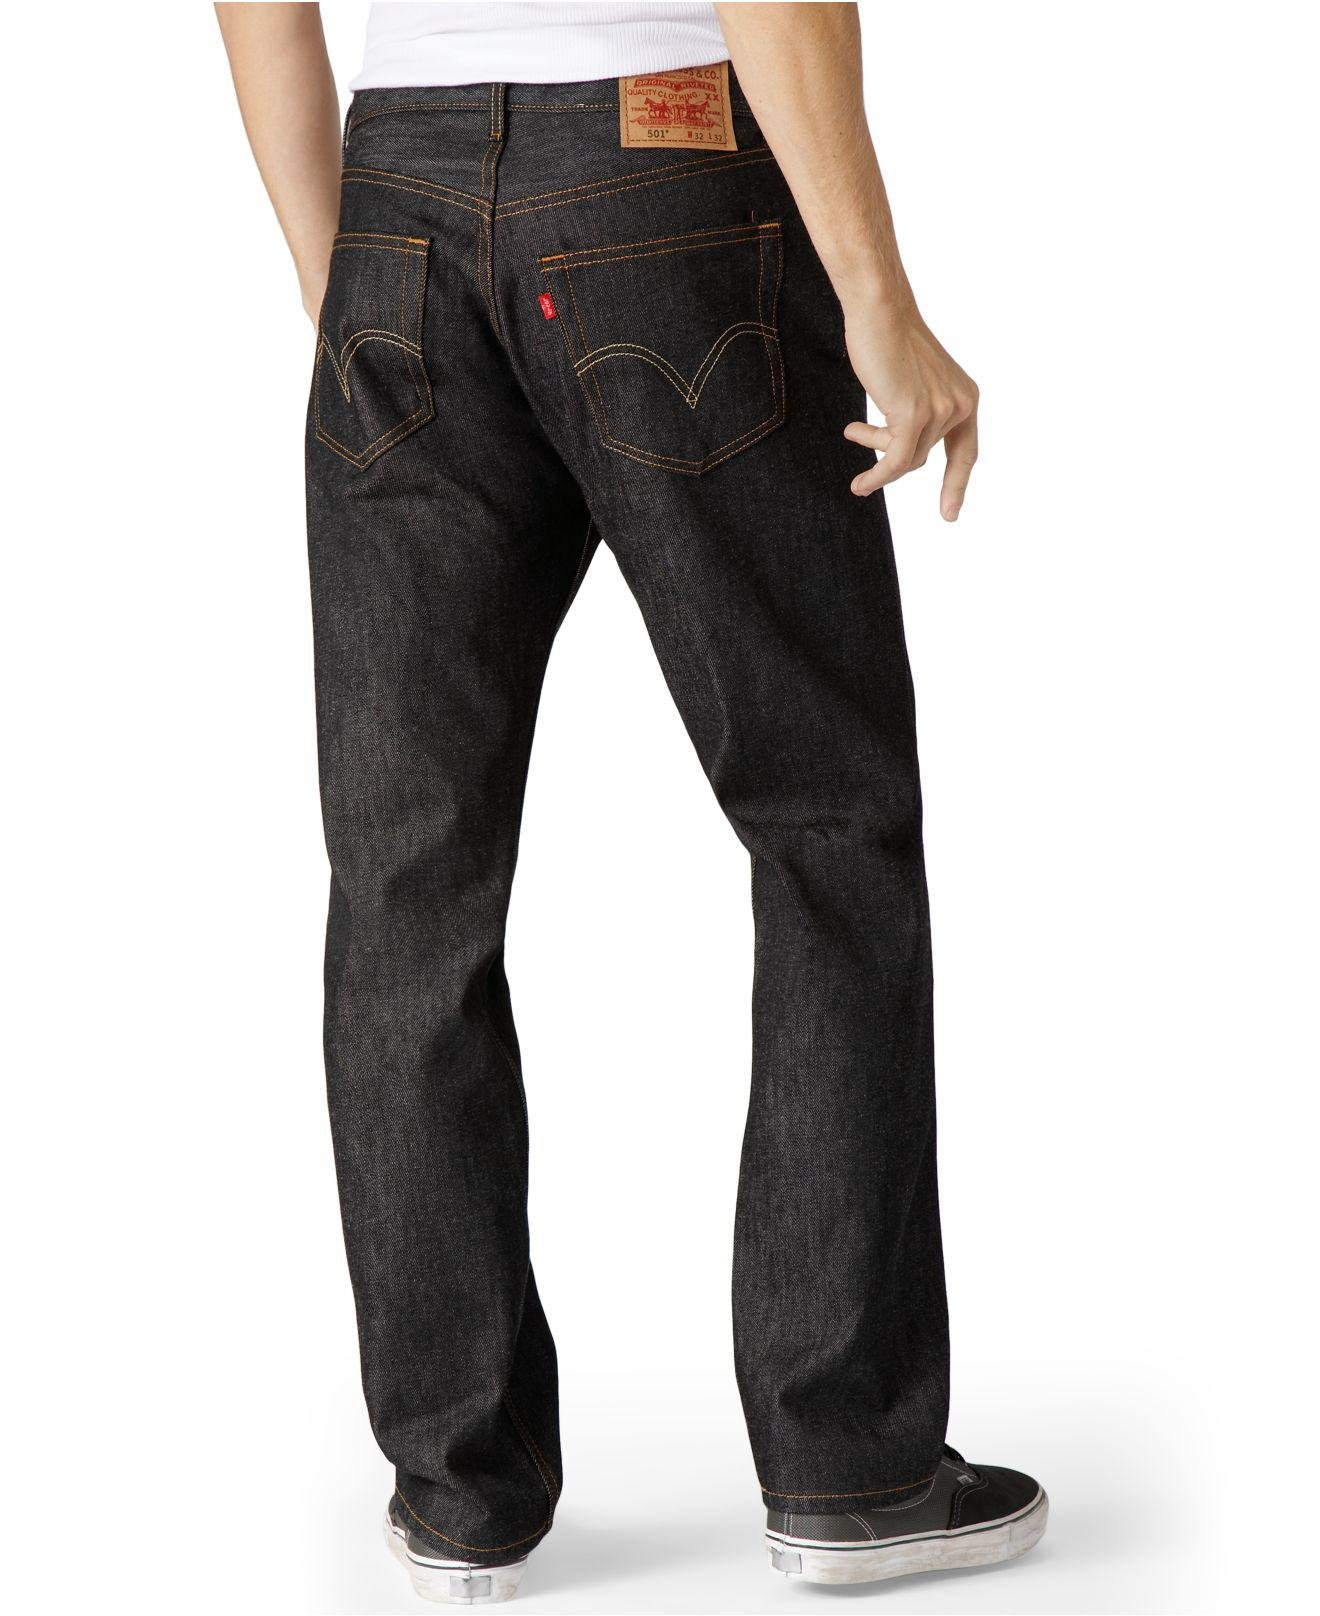 c1a1305d1db Lyst - Levi s Men s Big And Tall 501 Original Shrink To Fit Jeans in Black  for Men